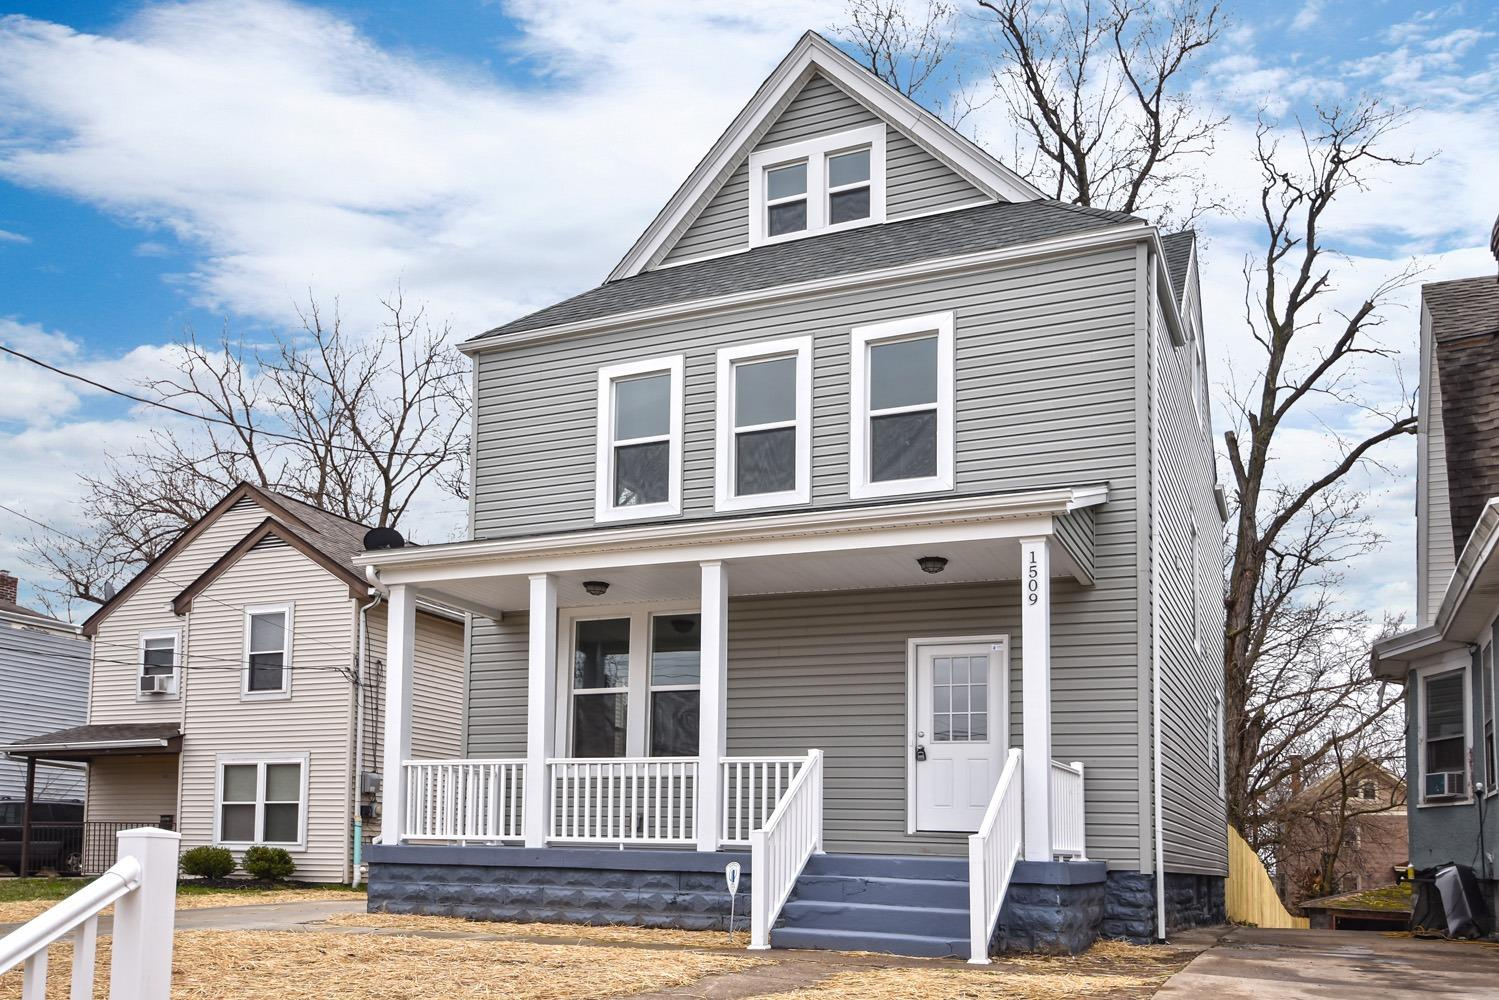 This REACH house features open concept on the main floor and has been totally rehabbed inside and out. 2048 finished square feet.  Energy Star mechanical systems and appliances! Minutes to downtown, UC and XU. Tax abated! Come be part of the educating  community where you can go from pre-k to PhD!